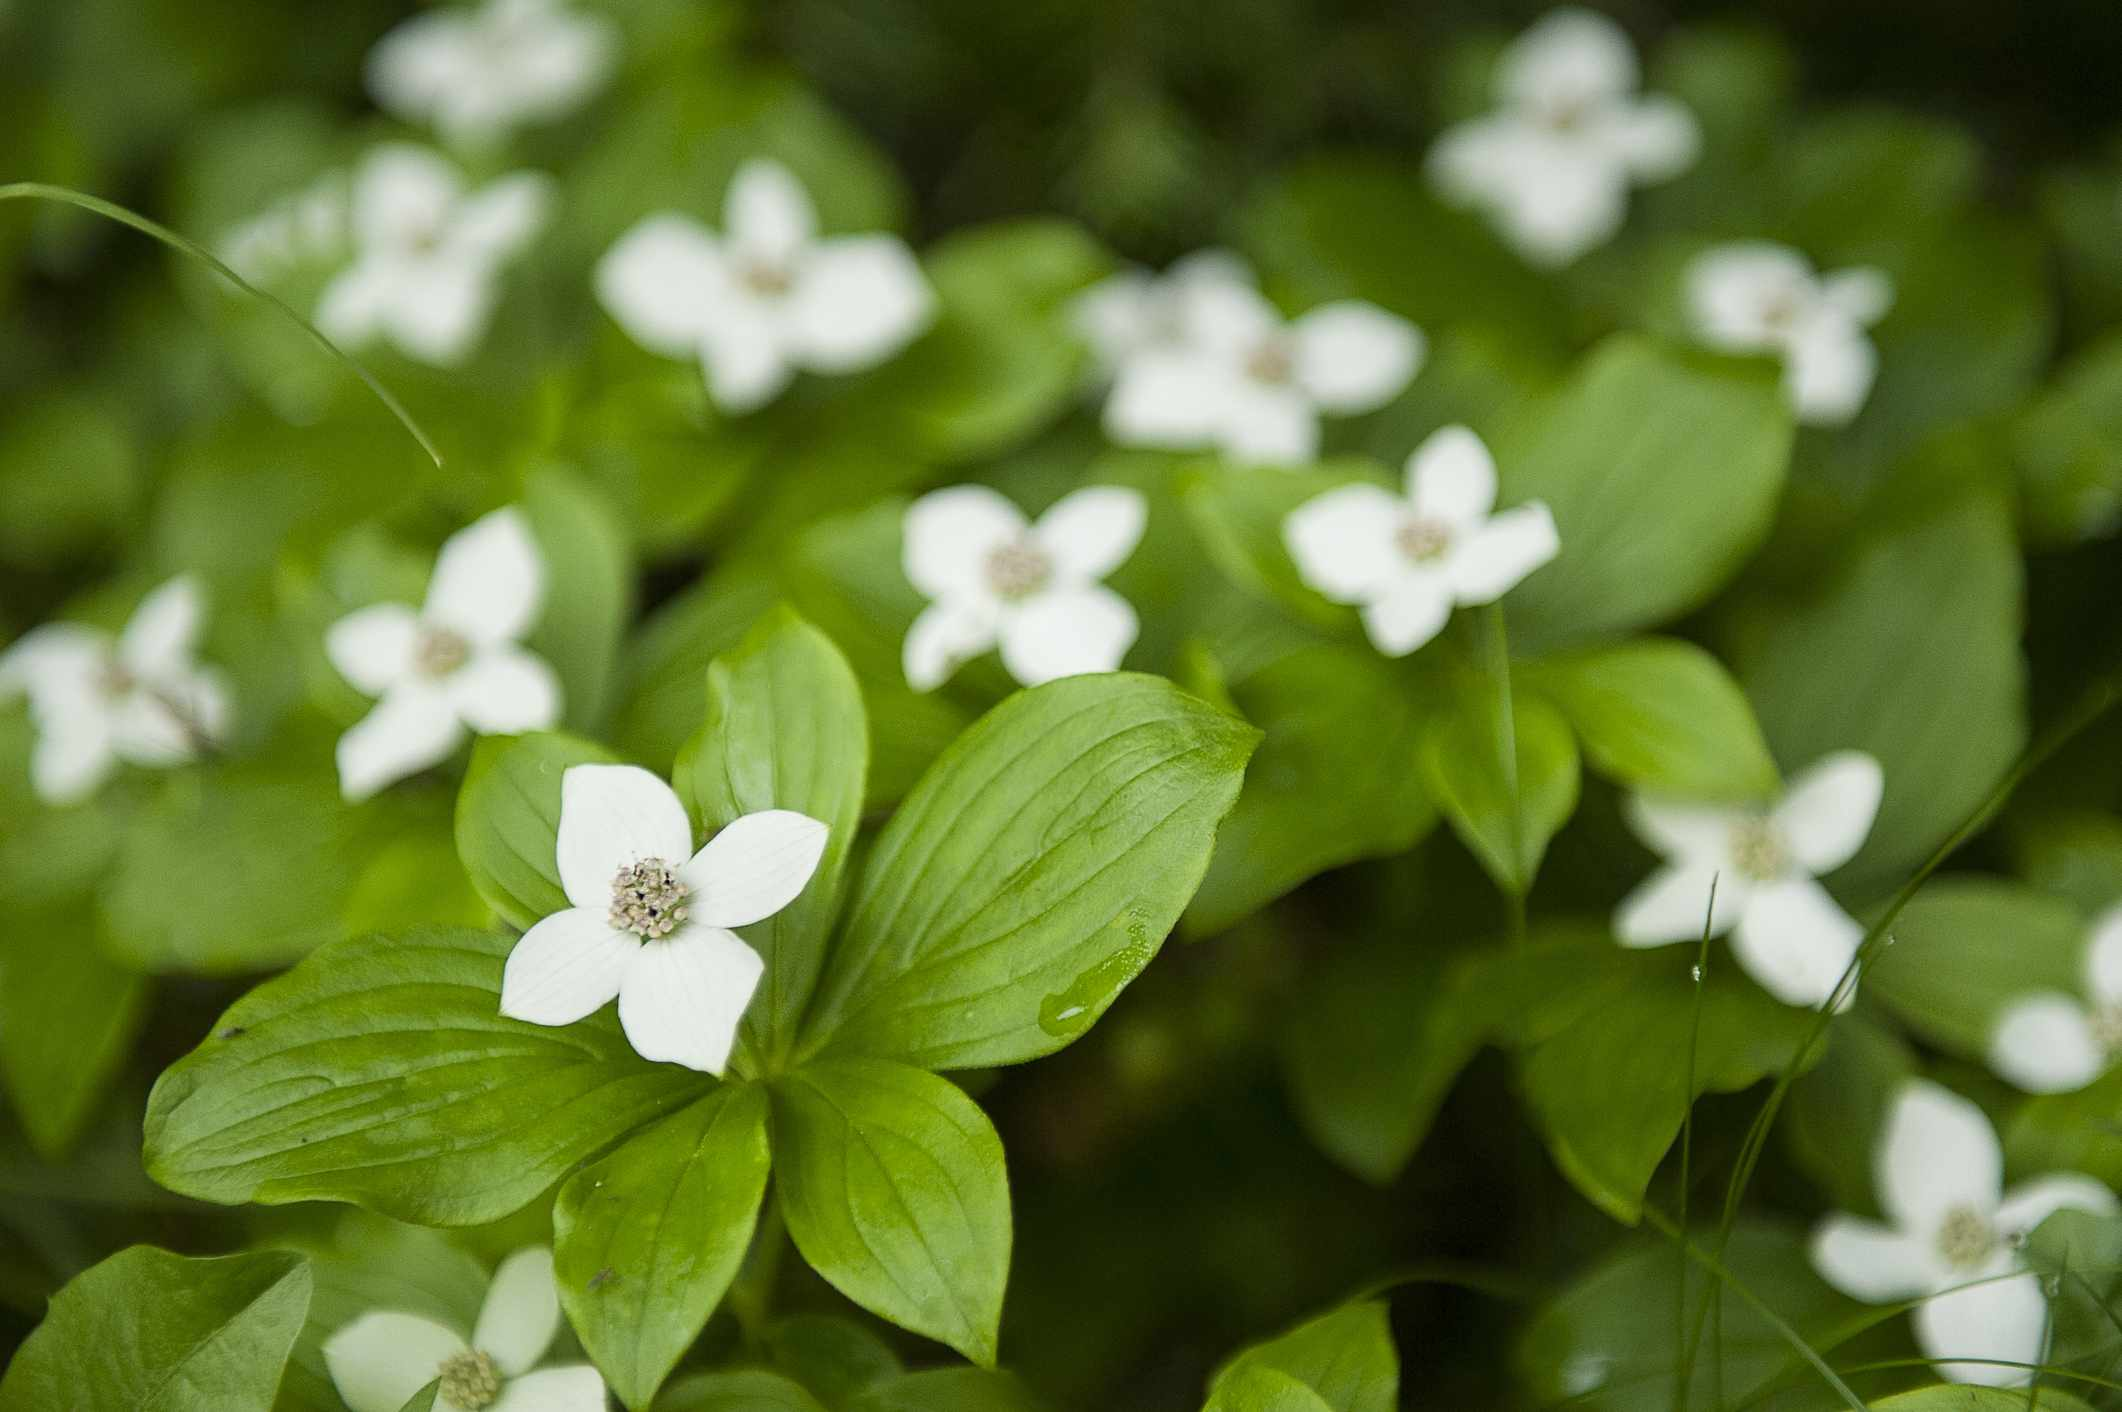 Close-up of Bunchberry Flowers